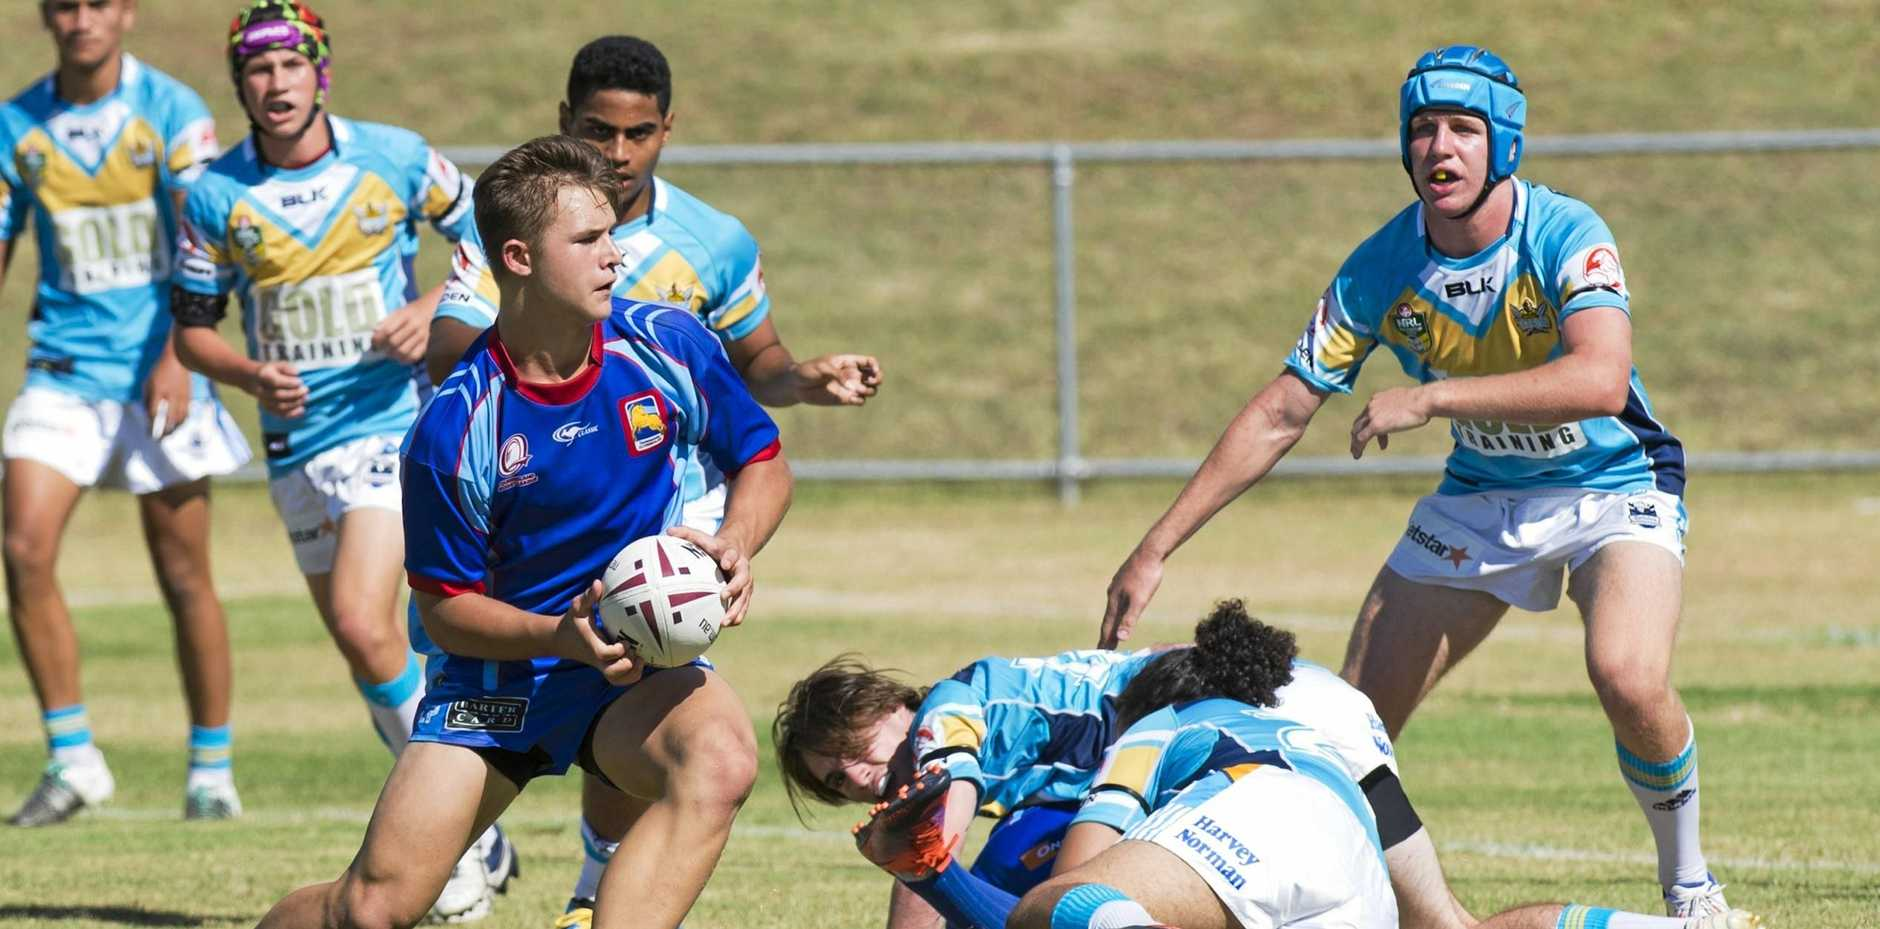 RISING TALENT: Jake Simpkins was among the best on ground for the Western Mustangs in their Mal Meninga Cup game.